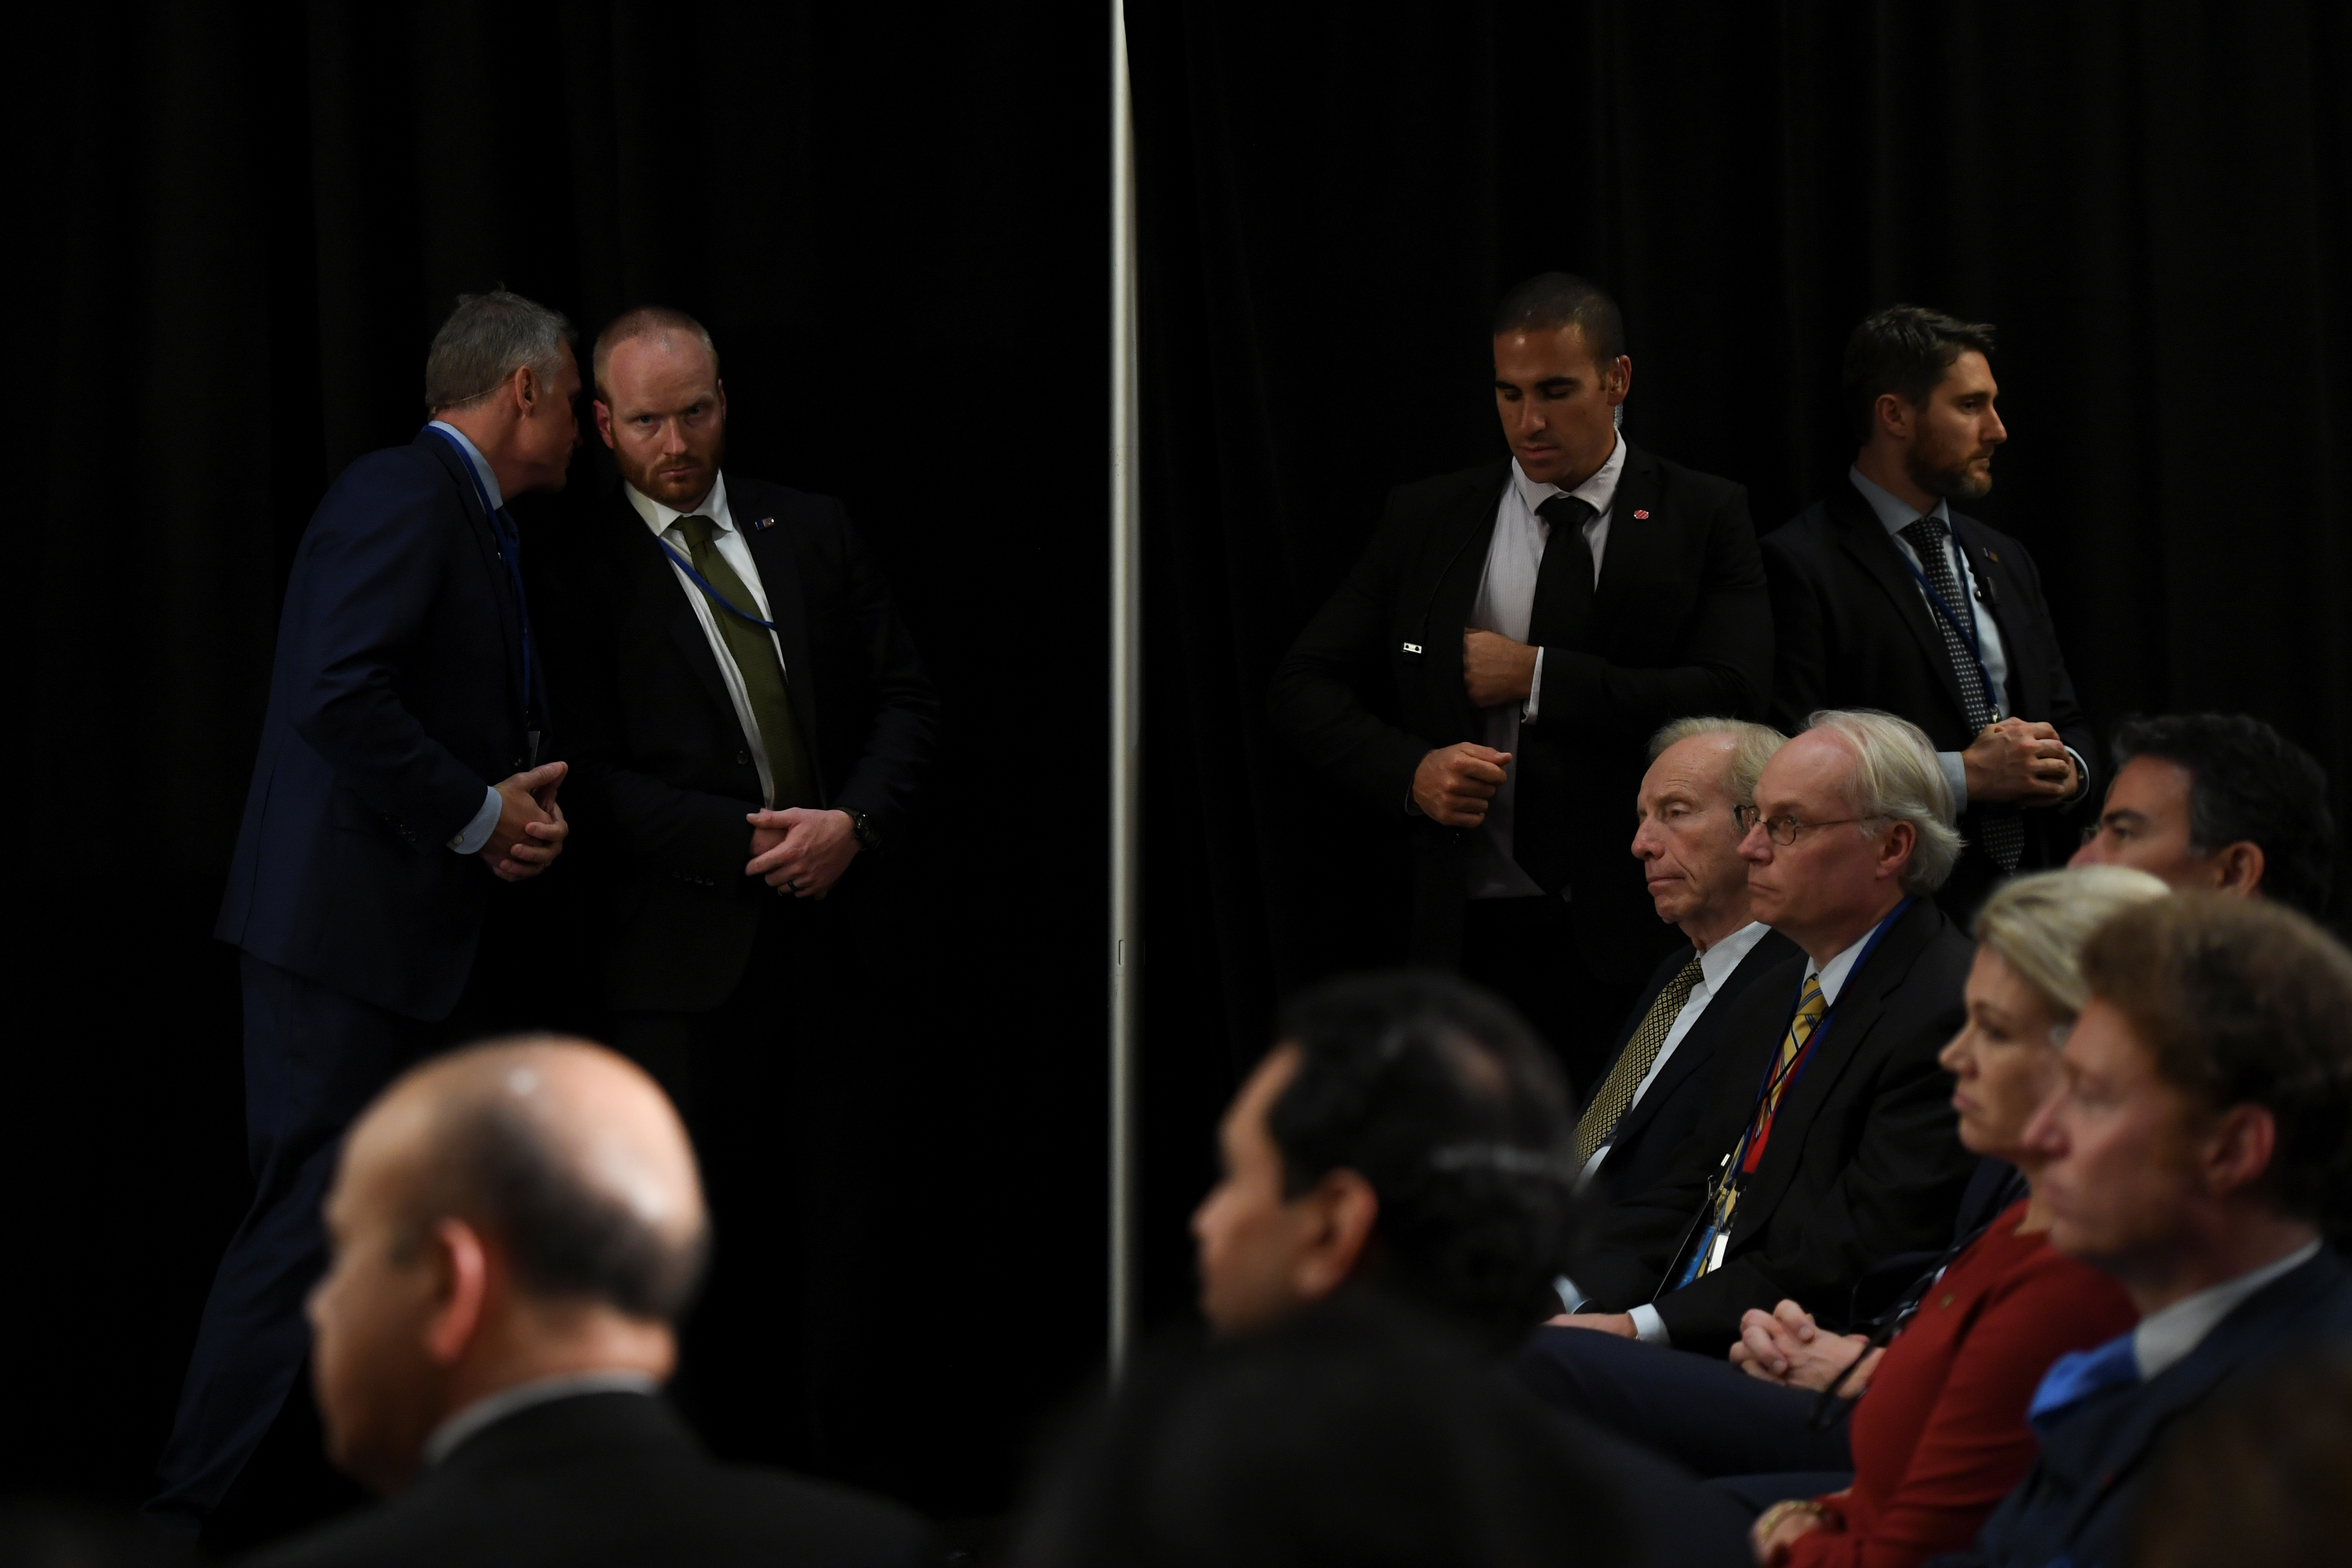 Several men in dark suits stand as others sit